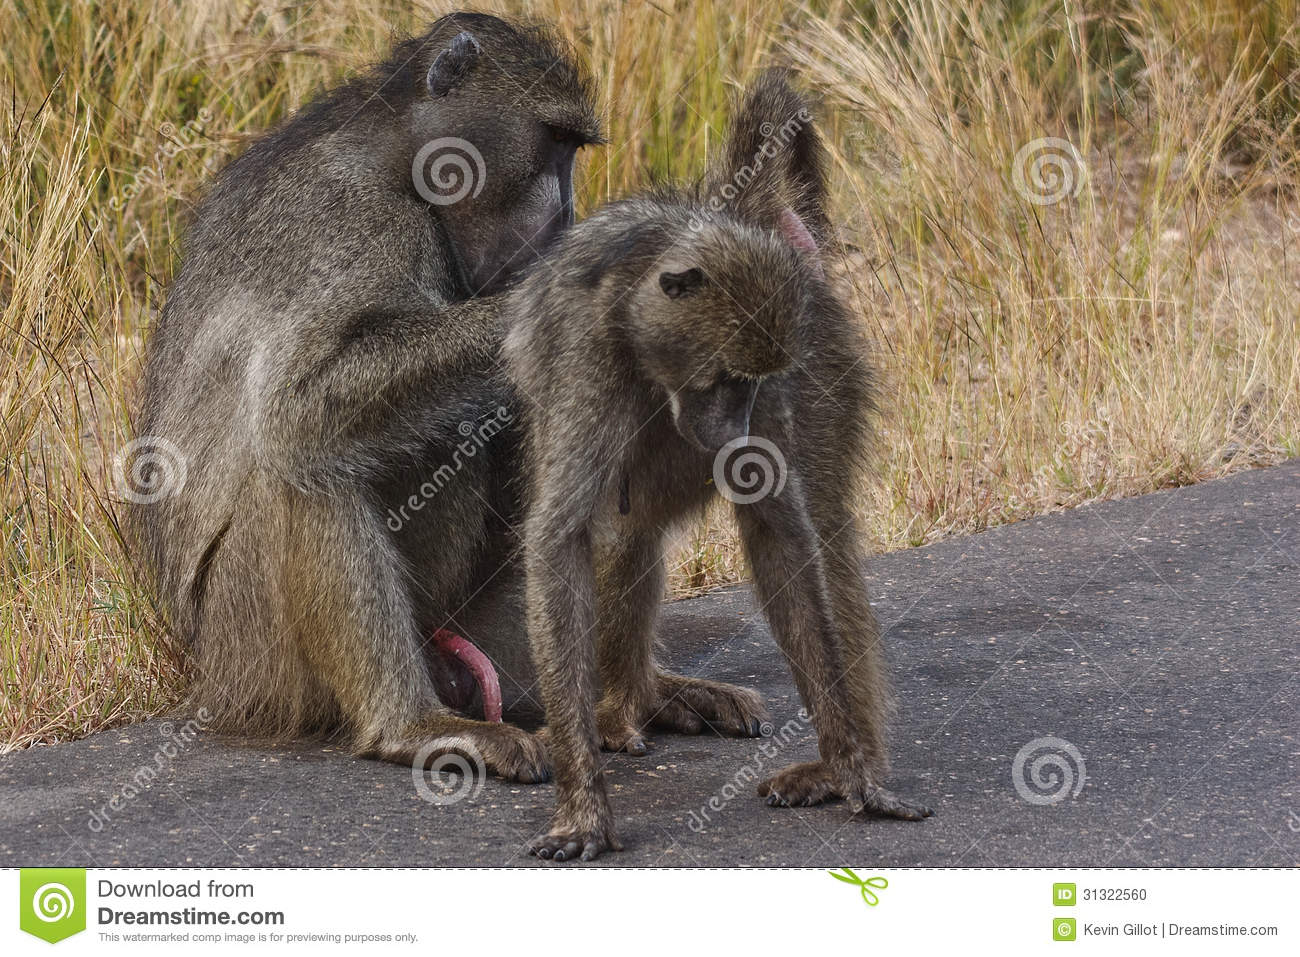 Male Baboon Grooming Female Stock Photo - Image: 31322560